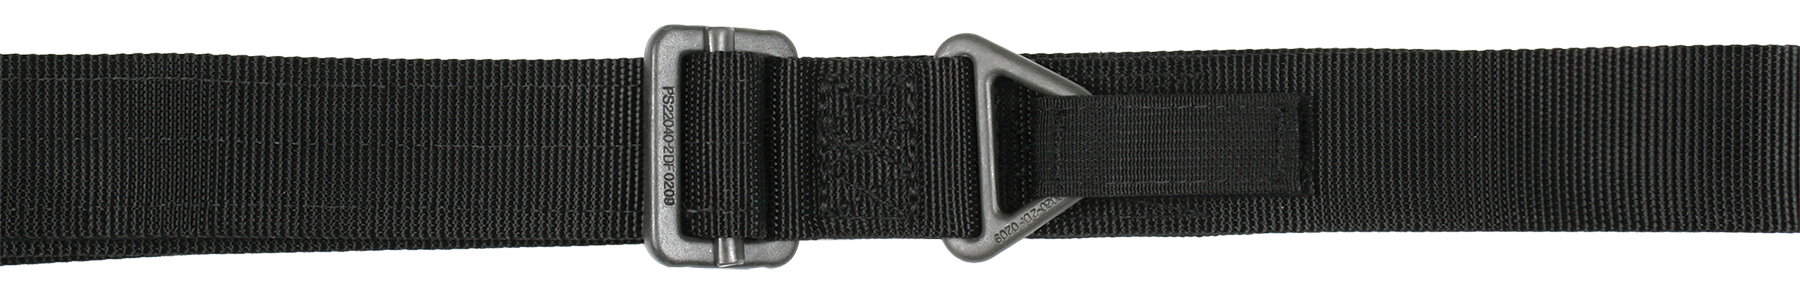 BLACKHAWK!® CQB Riggers Belt - Small - Up to 34